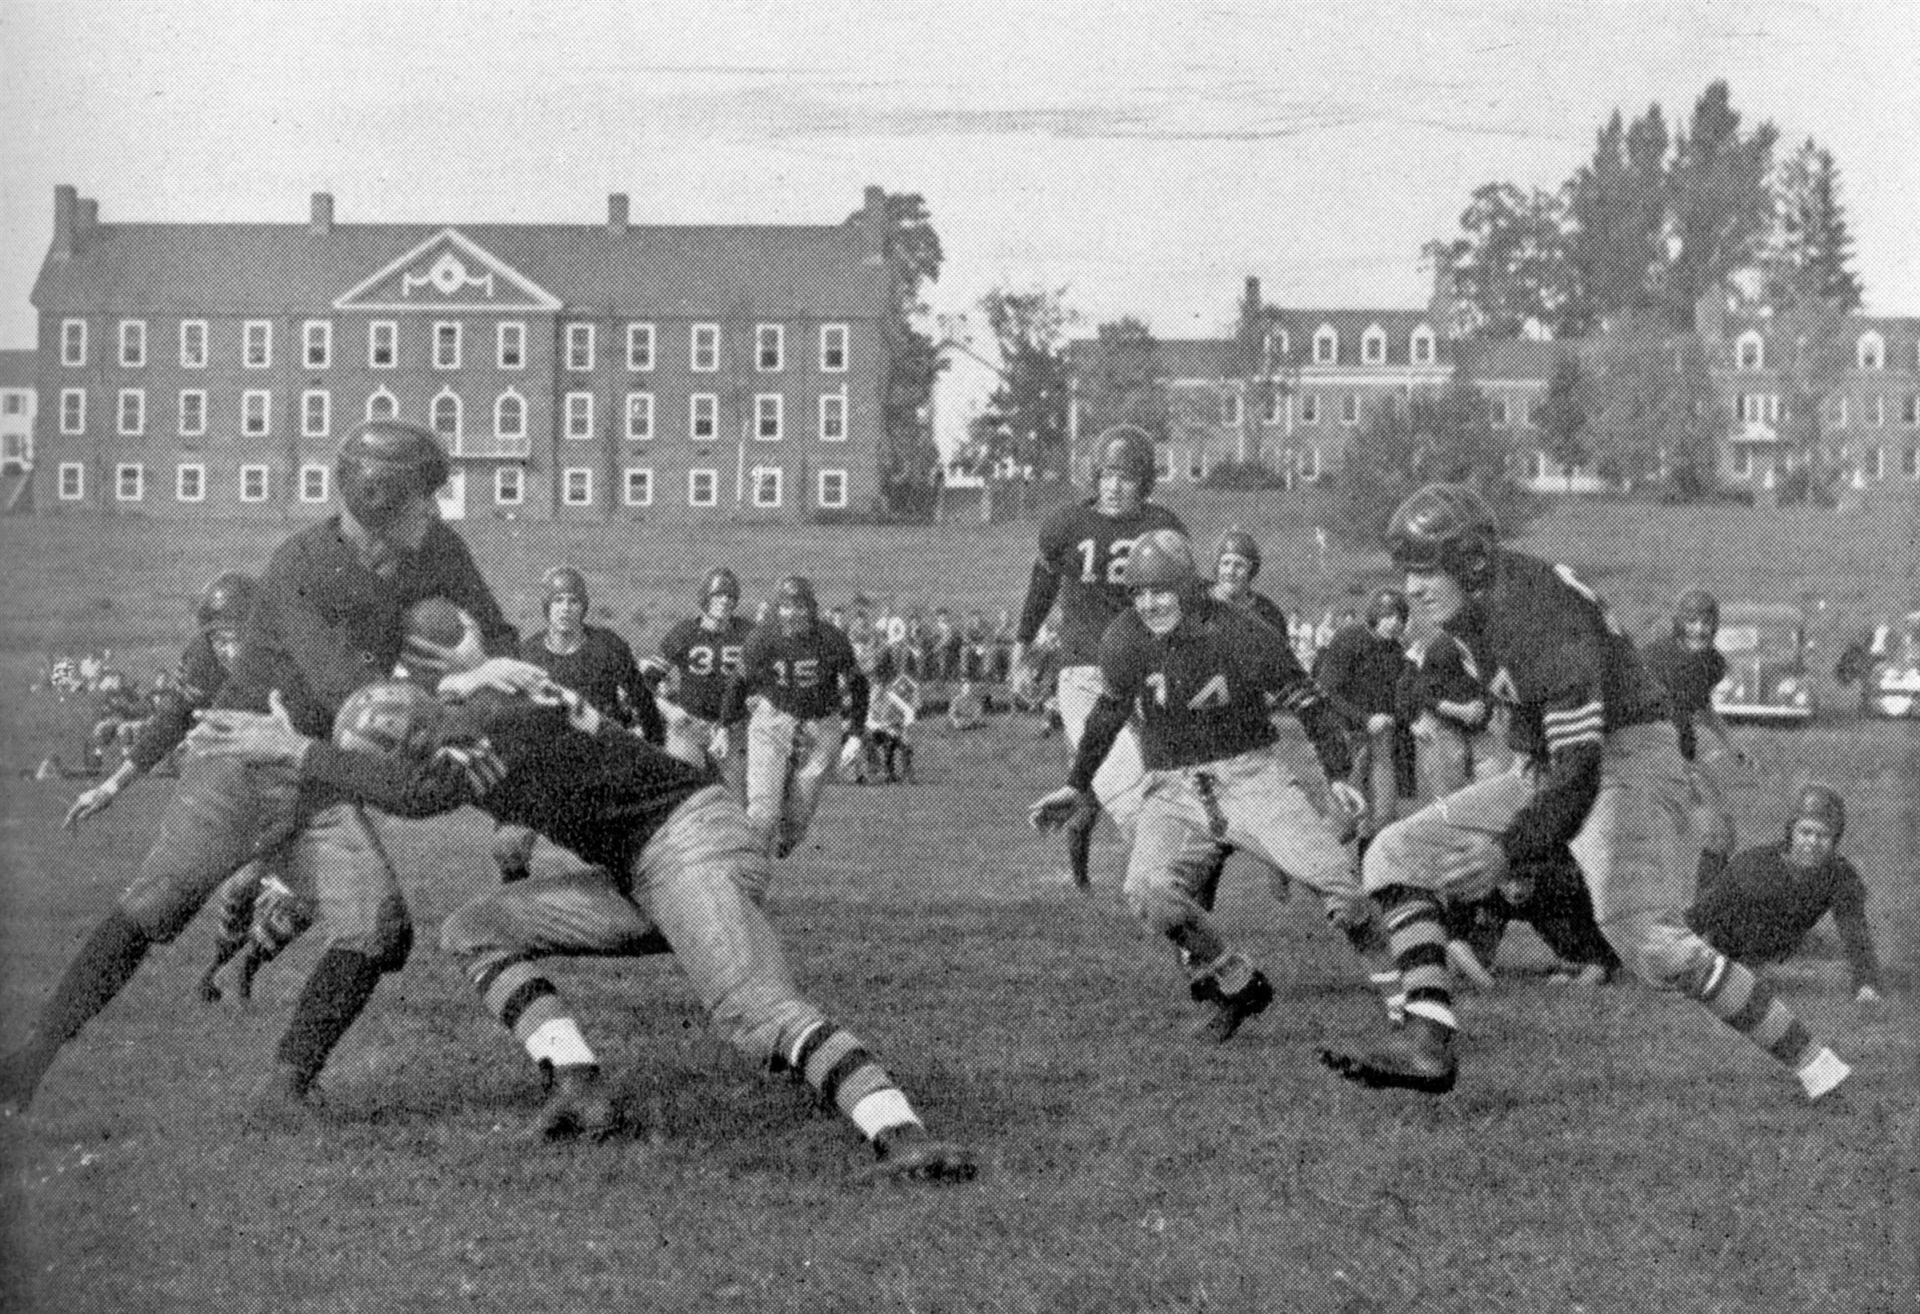 A football game at Millbrook in 1945